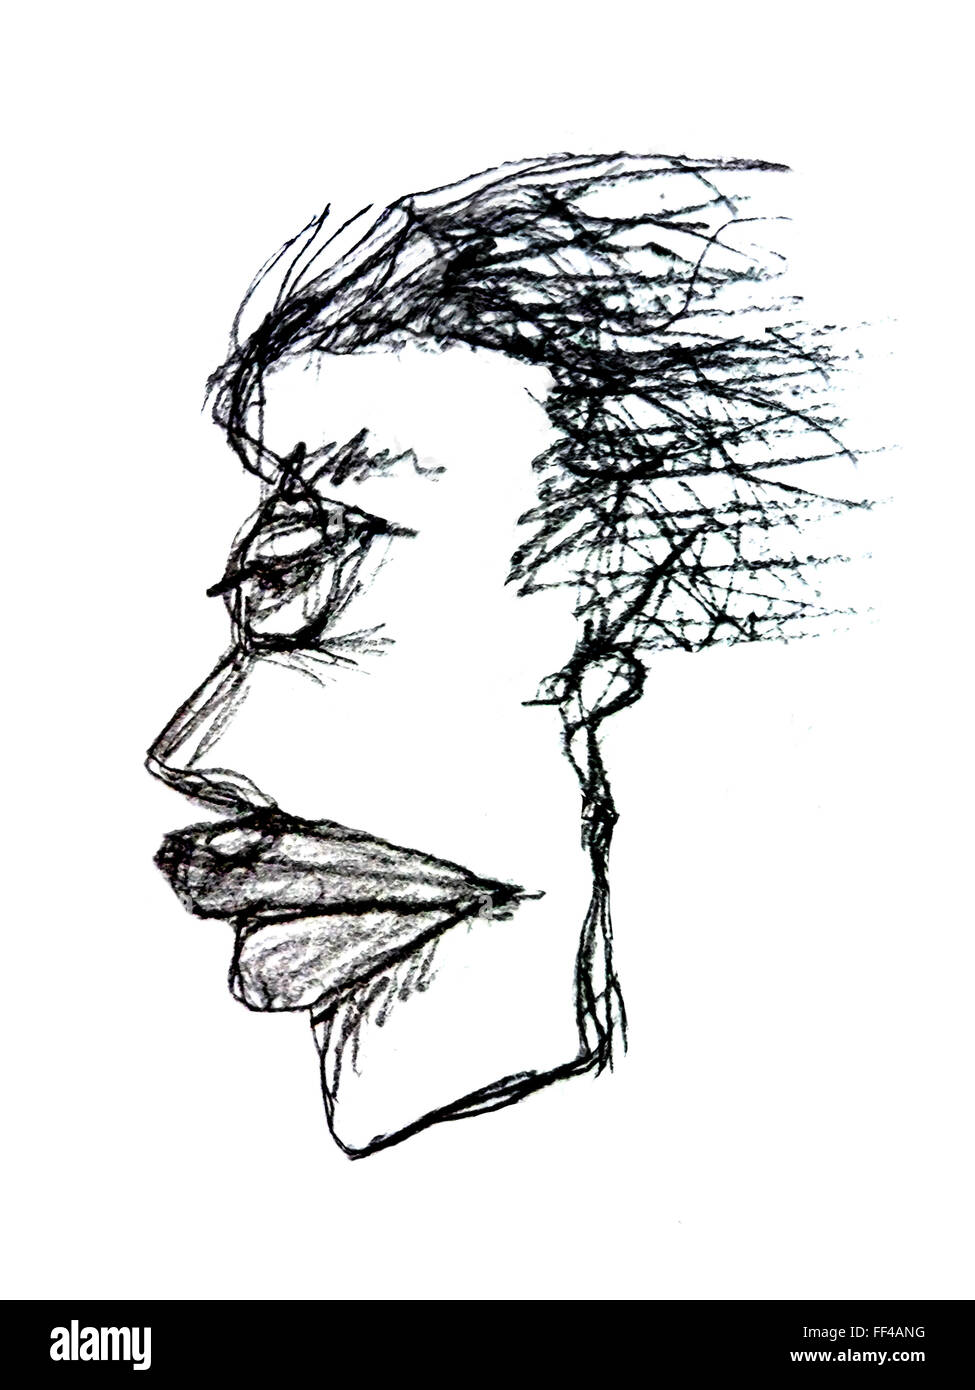 Pencil drawing technique raster illustration side view portrait of adult woman face with serious or angry expression in black co